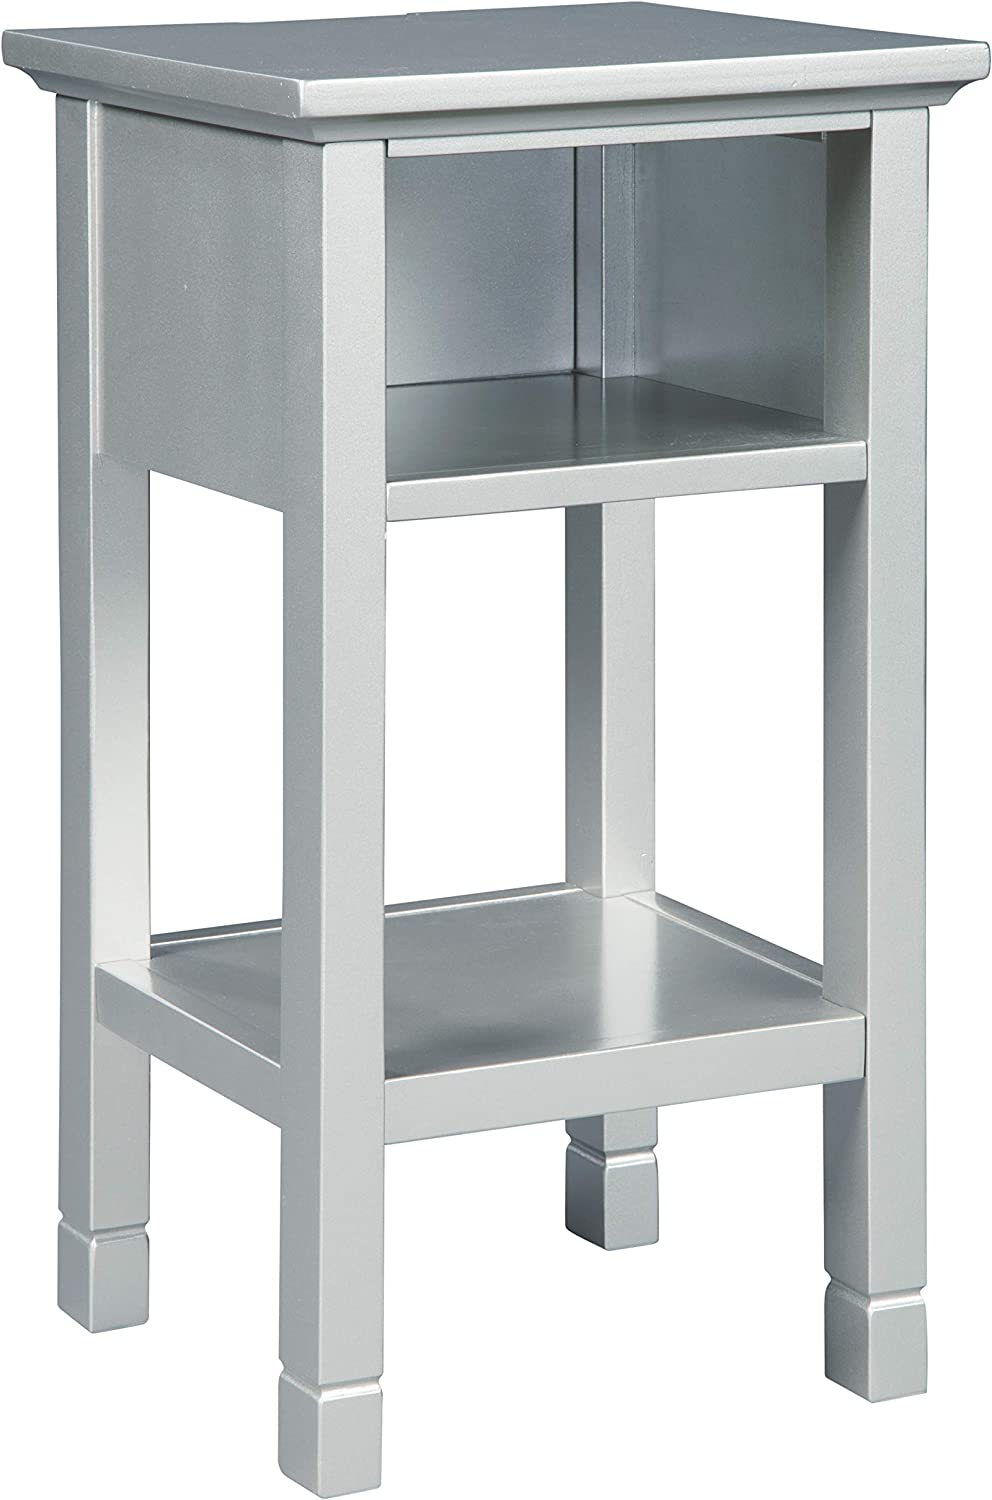 Signature Design by Ashley - Marnville Accent Table - With USB Hook-Up - Contemporary - Silver Finish